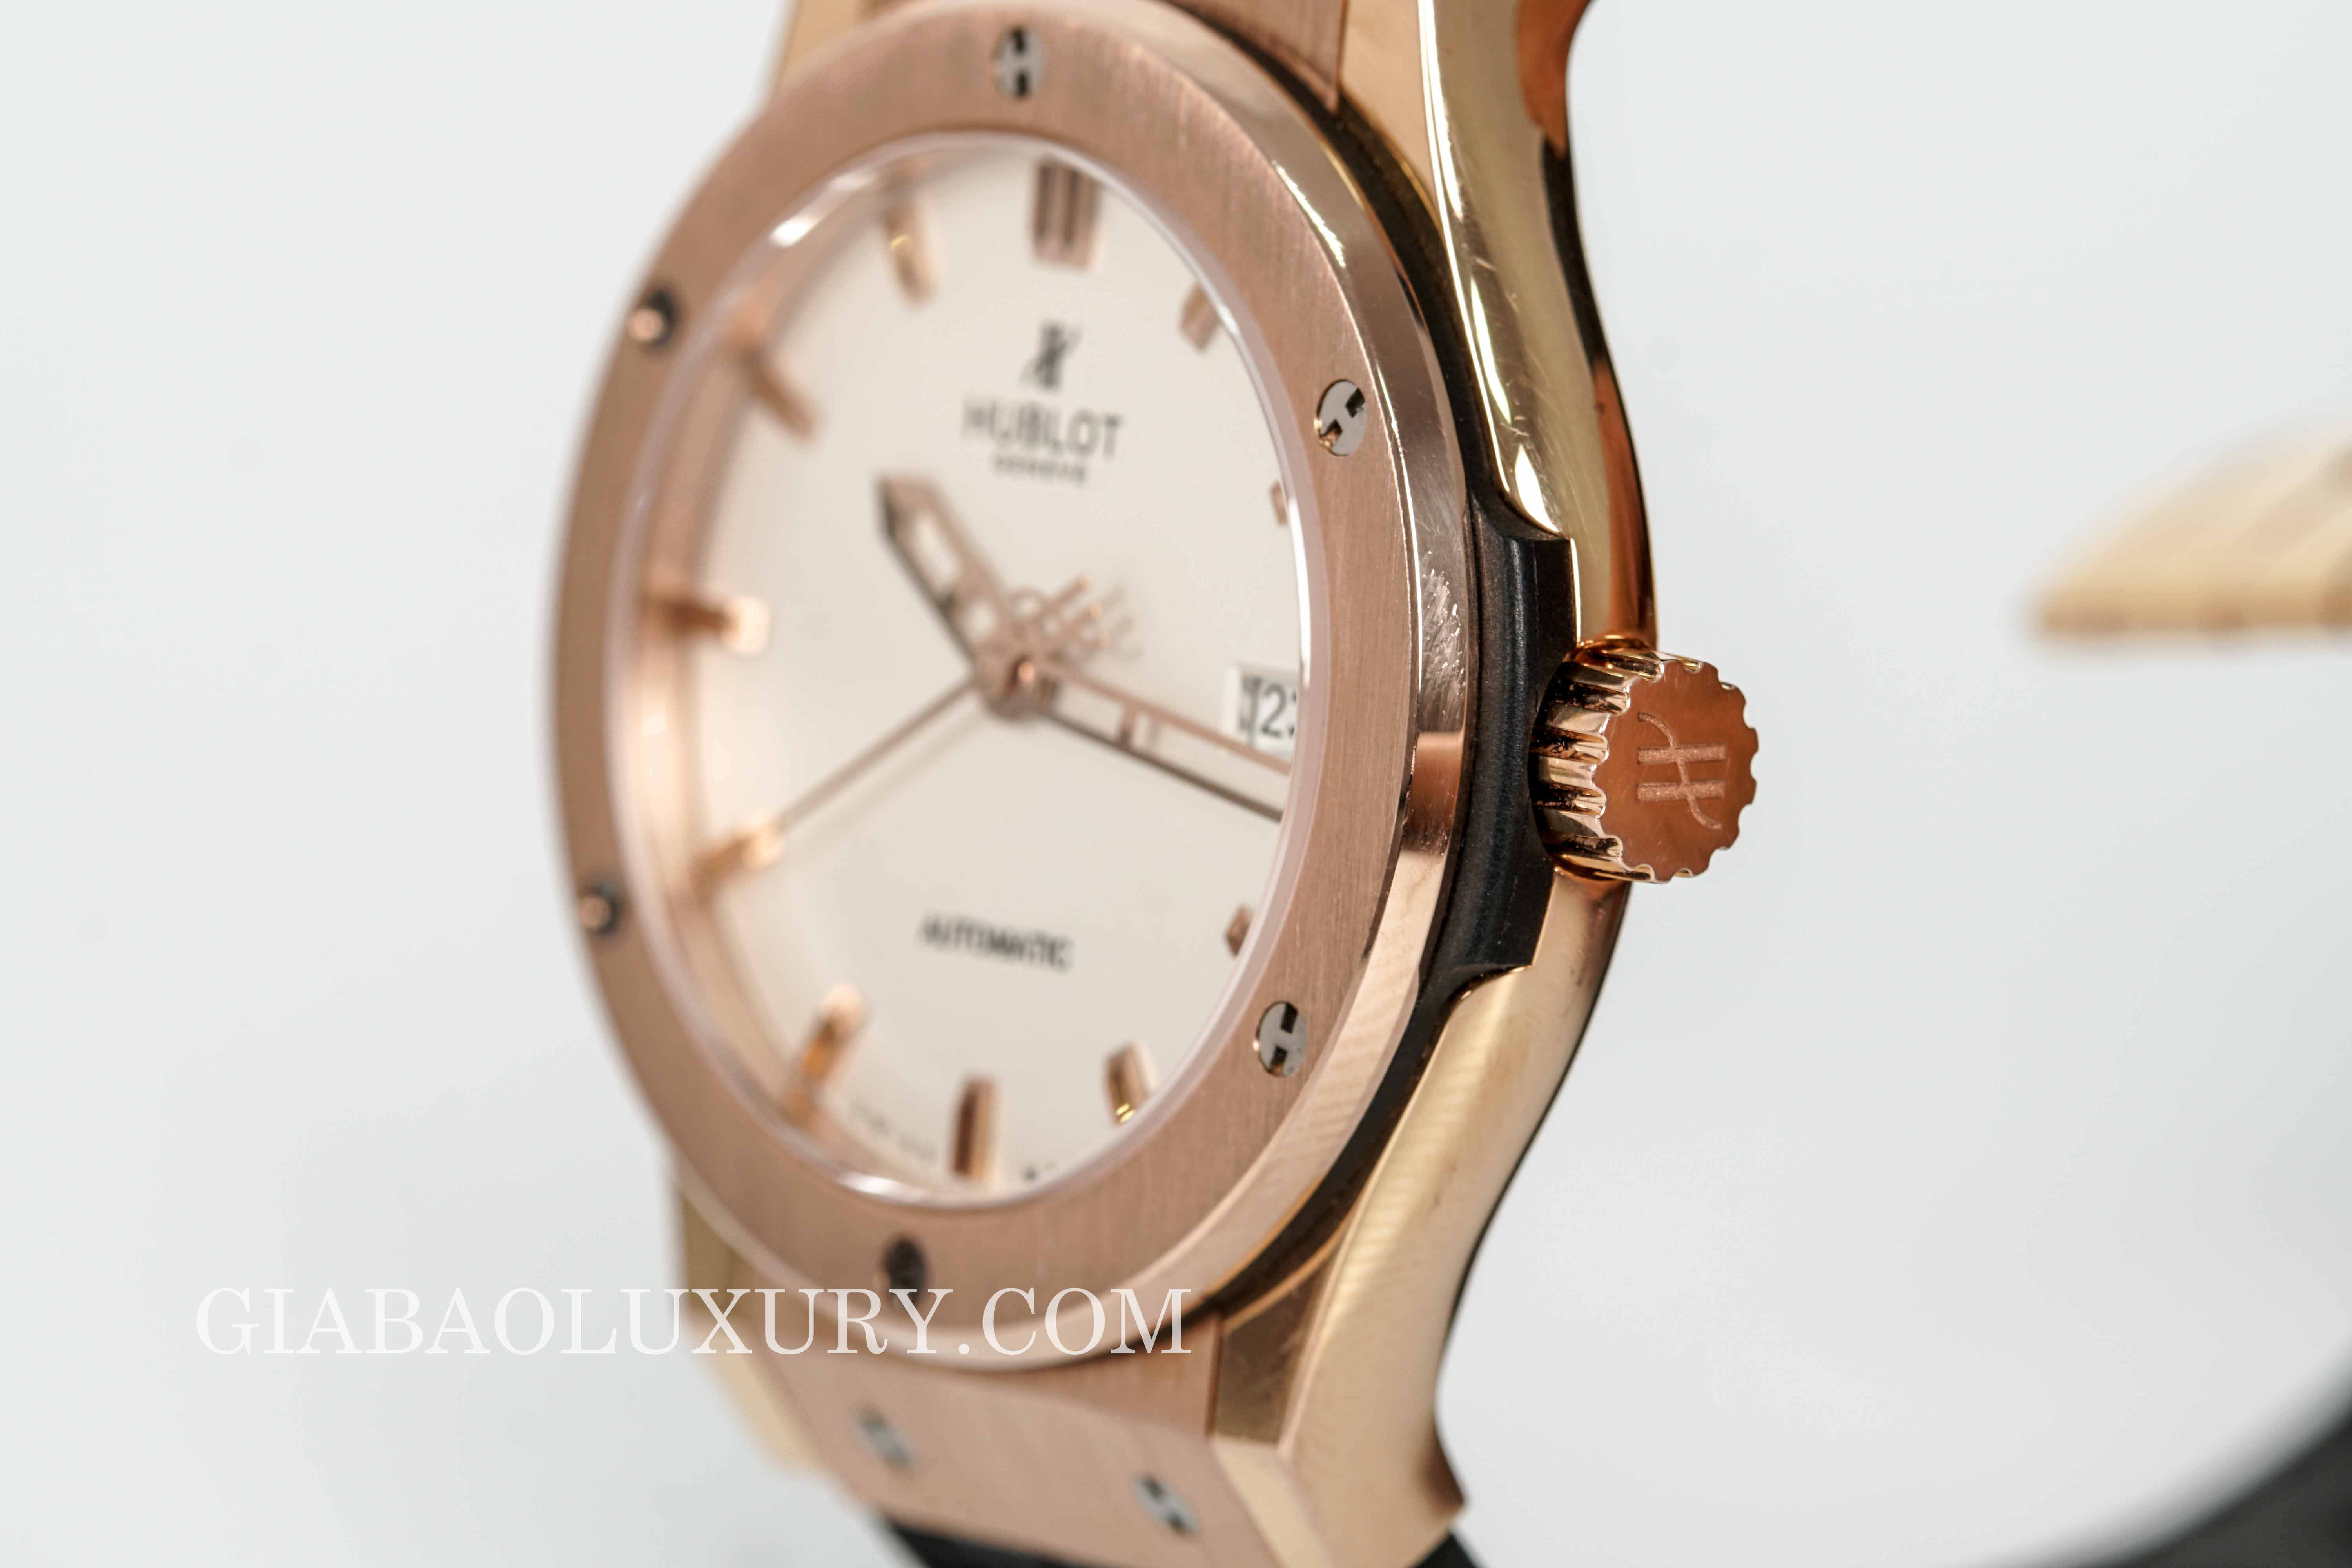 Đồng Hồ Hublot Classic Fusion King Gold Opalin 42mm 542.OX.2610.LR